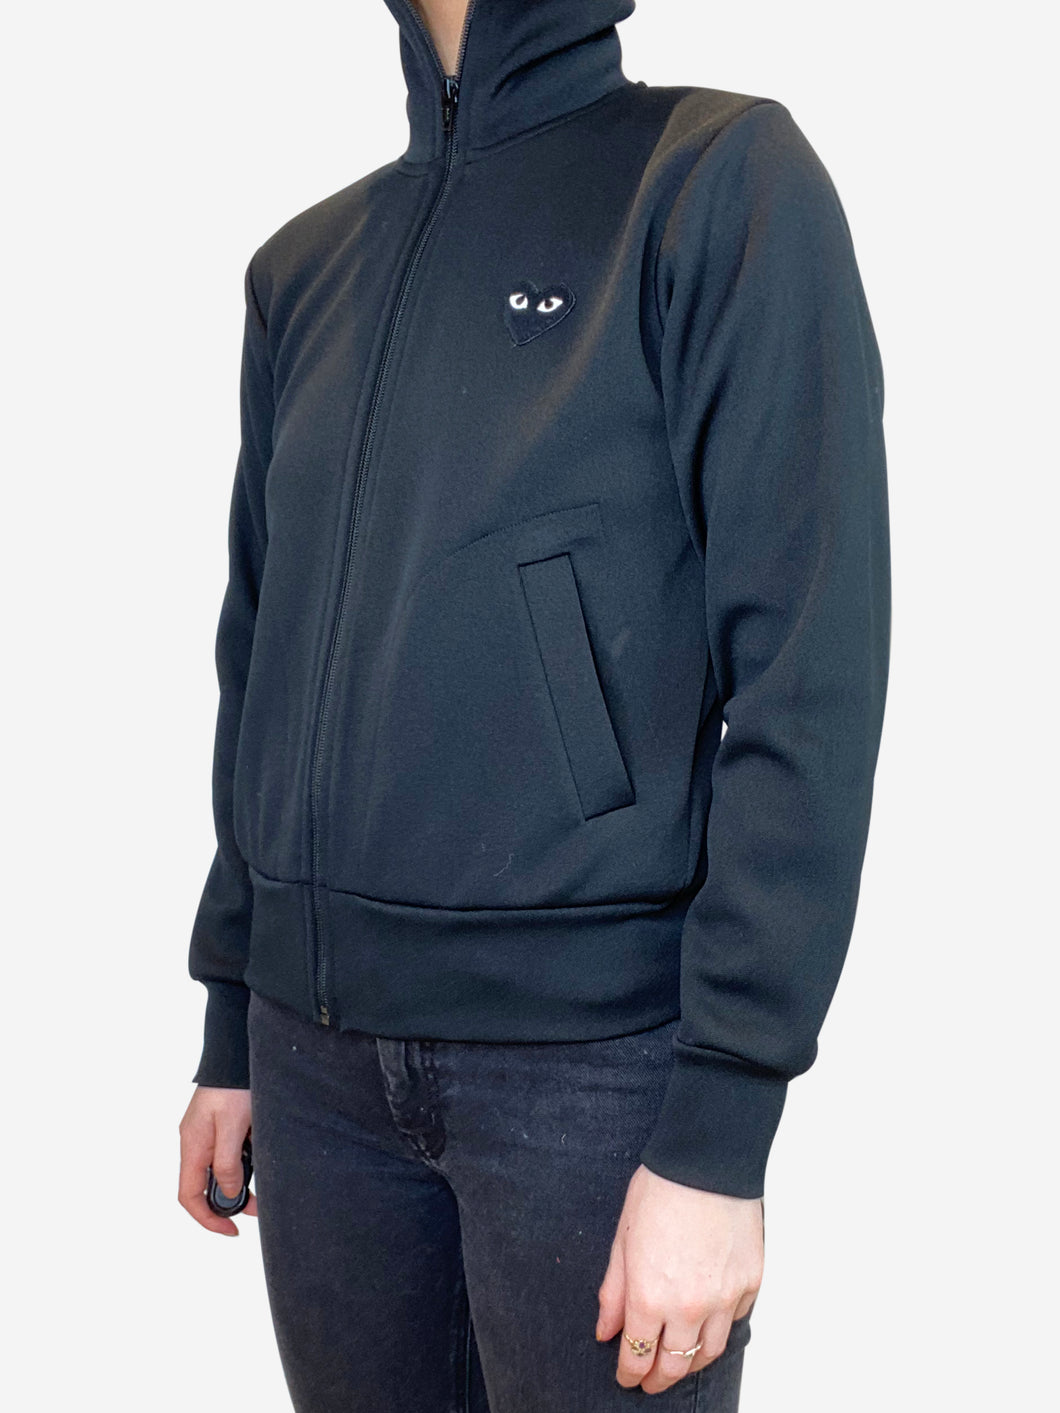 Black zip up track jacket with logo - size S